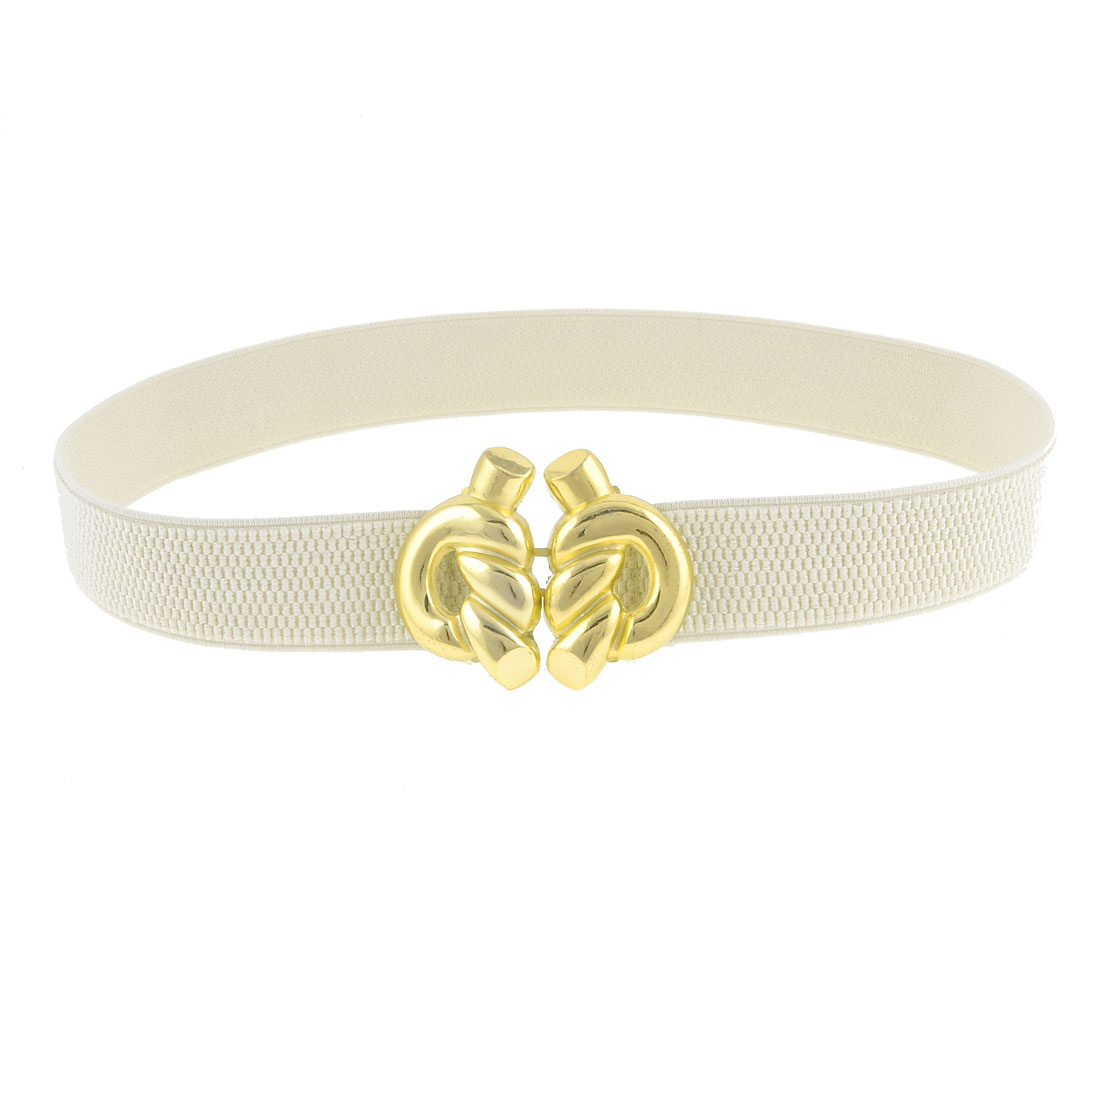 White Elastic Band Gold Tone Rope Knot Shape Buckle Belt for Ladies